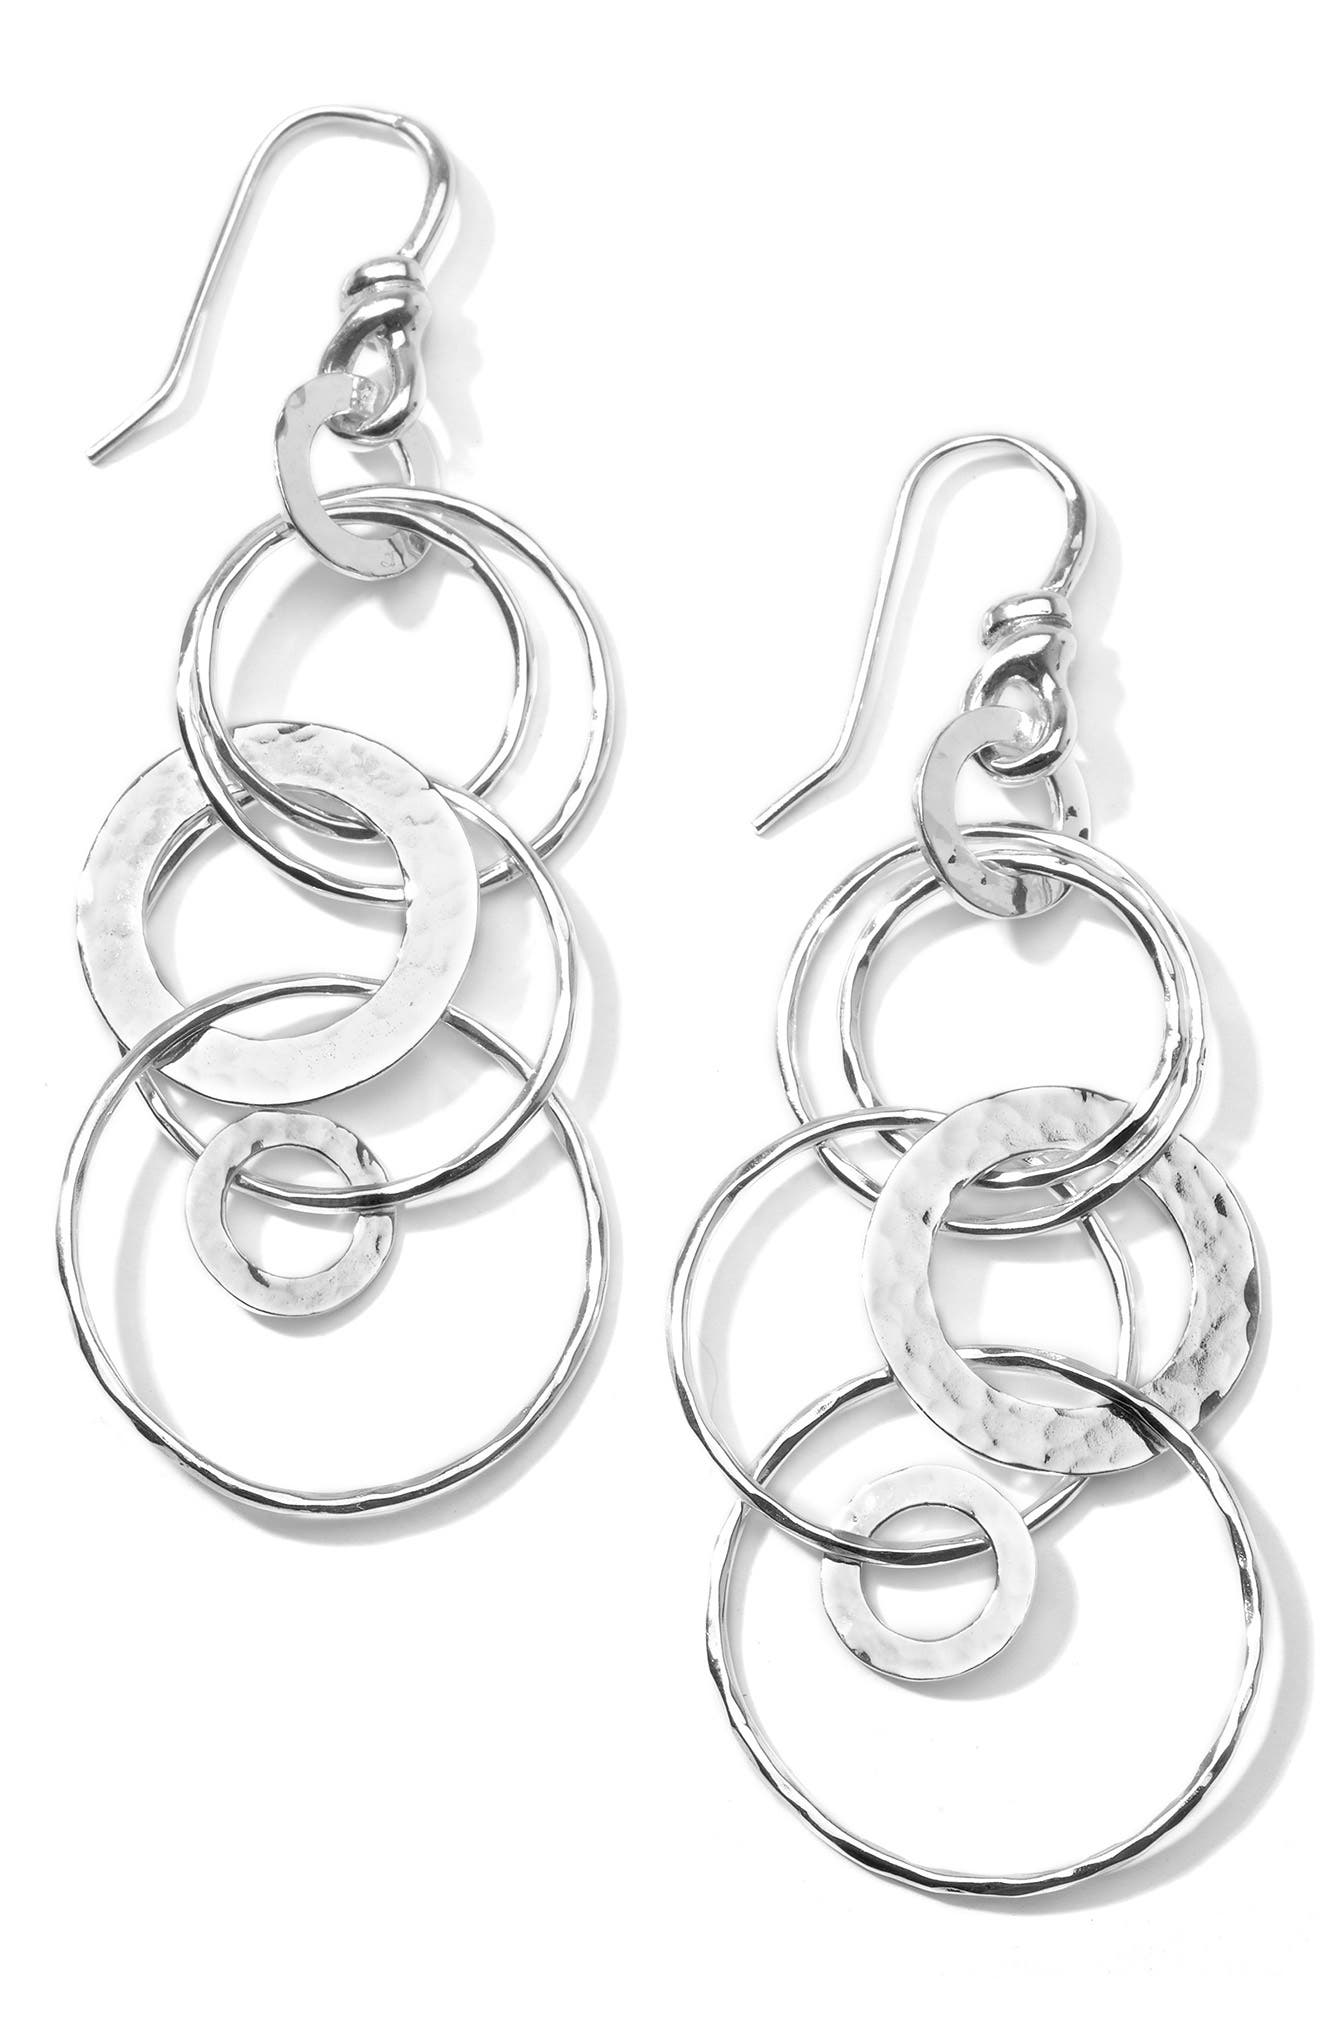 'Jet Set' Drop Earrings,                             Main thumbnail 1, color,                             040